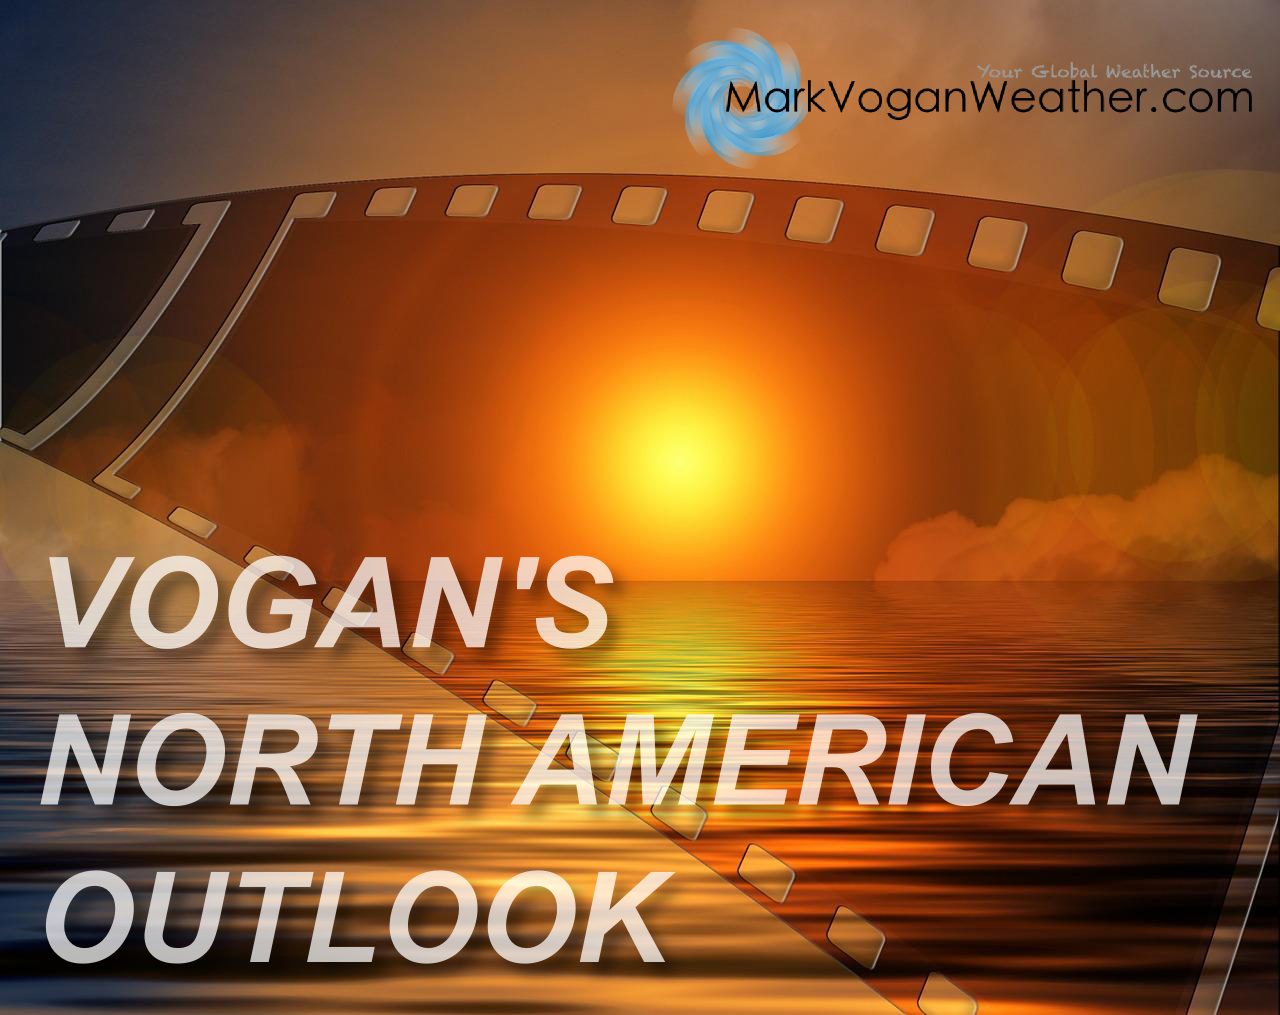 SAT 22 MAR: VOGAN'S NORTH AMERICAN OUTLOOK